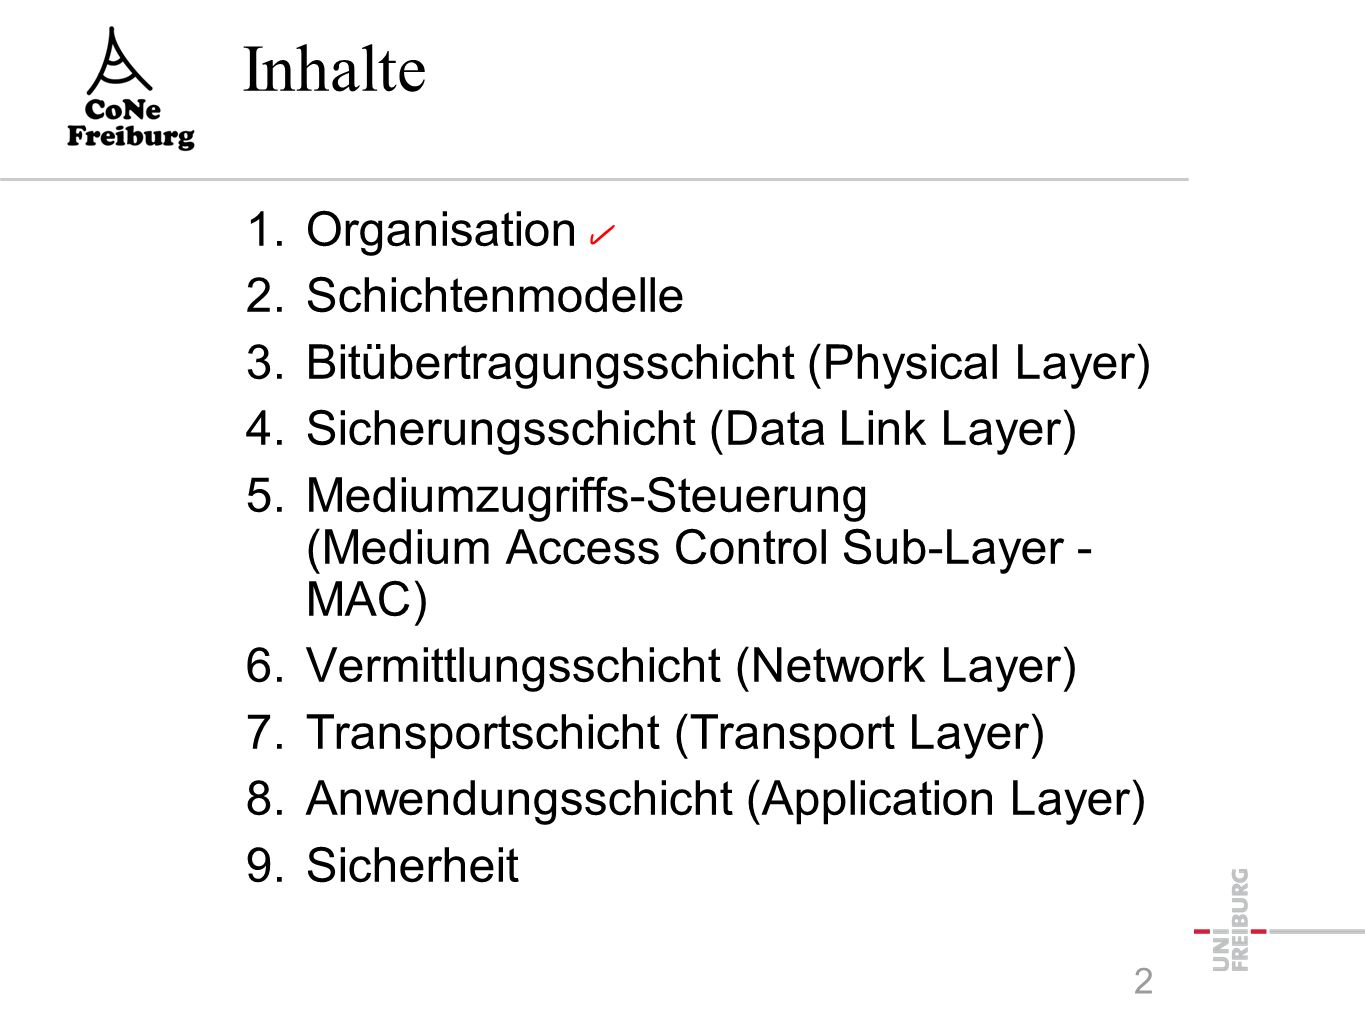 Inhalte 1.Organisation 2.Schichtenmodelle 3.Bitübertragungsschicht (Physical Layer) 4.Sicherungsschicht (Data Link Layer) 5.Mediumzugriffs-Steuerung (Medium Access Control Sub-Layer - MAC) 6.Vermittlungsschicht (Network Layer) 7.Transportschicht (Transport Layer) 8.Anwendungsschicht (Application Layer) 9.Sicherheit 2